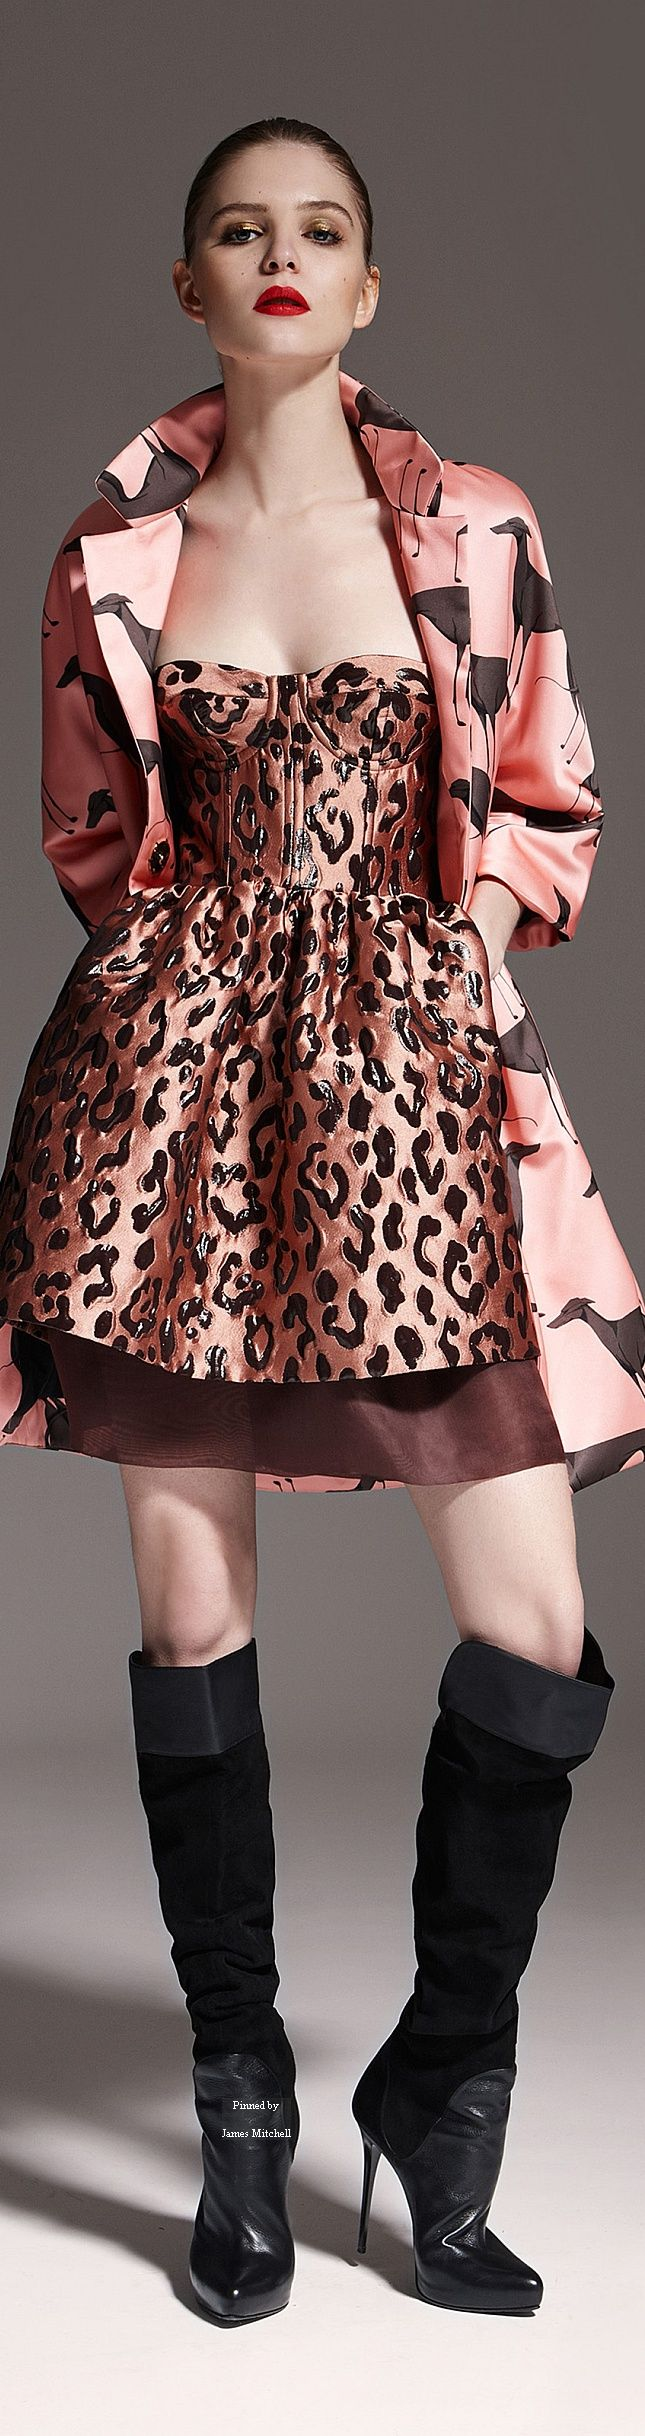 Marcobologna Collections Fall Winter 2015-16 collection